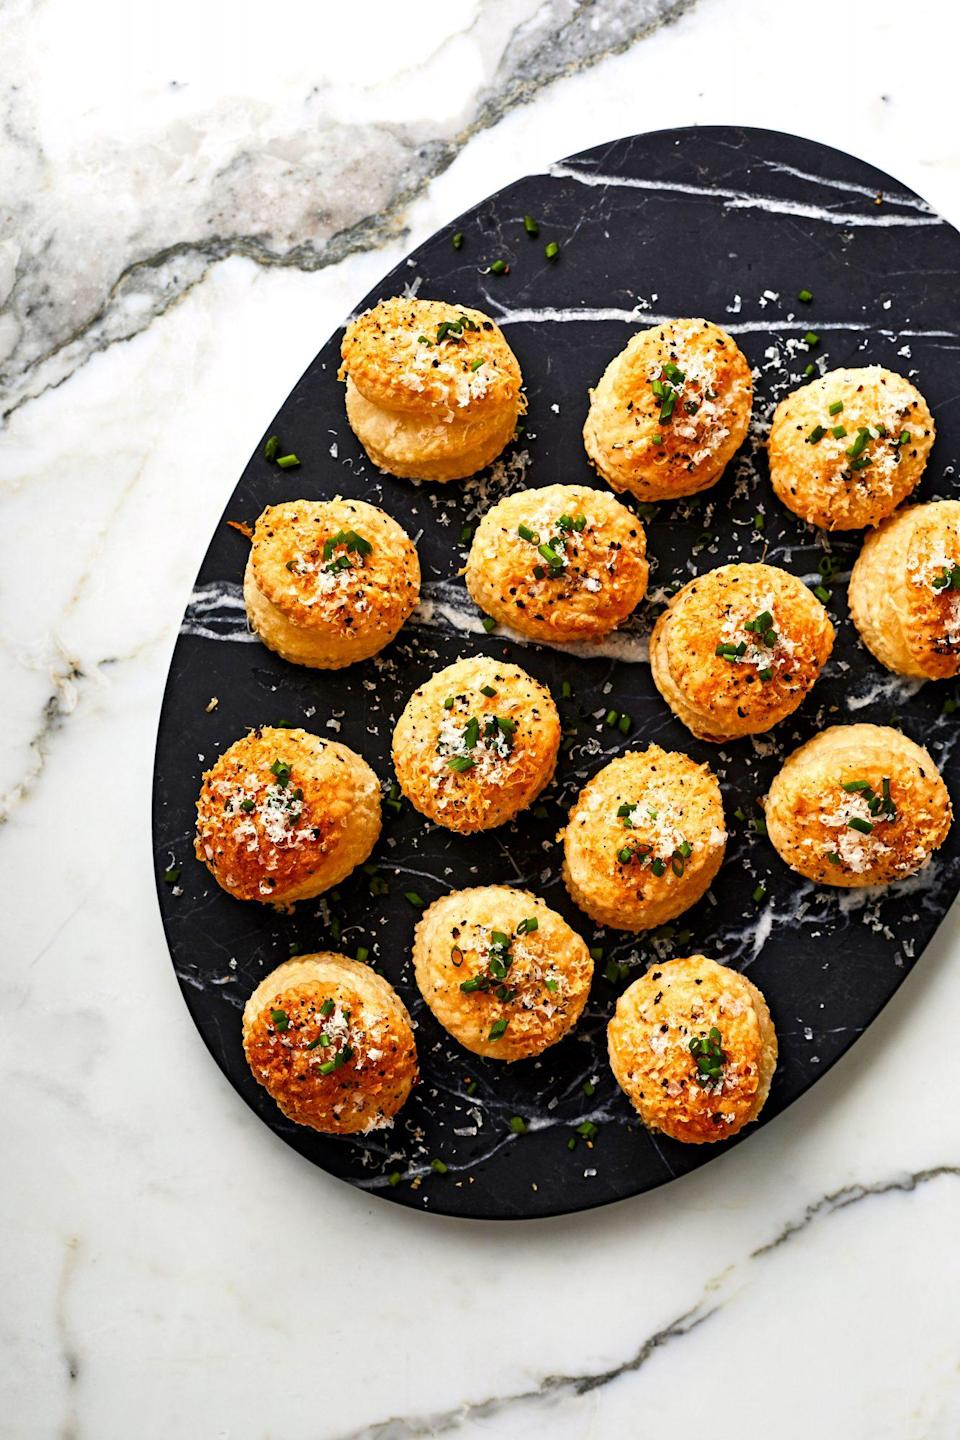 """<p><strong>Recipe: <a href=""""https://www.southernliving.com/recipes/cacio-e-pepe-puffs"""" rel=""""nofollow noopener"""" target=""""_blank"""" data-ylk=""""slk:Cacio e Pepe Puffs"""" class=""""link rapid-noclick-resp"""">Cacio e Pepe Puffs</a></strong></p> <p>Aside from frozen puff pastry sheets, you probably have all of the ingredients for these simple puffs on hand in your kitchen already. </p>"""